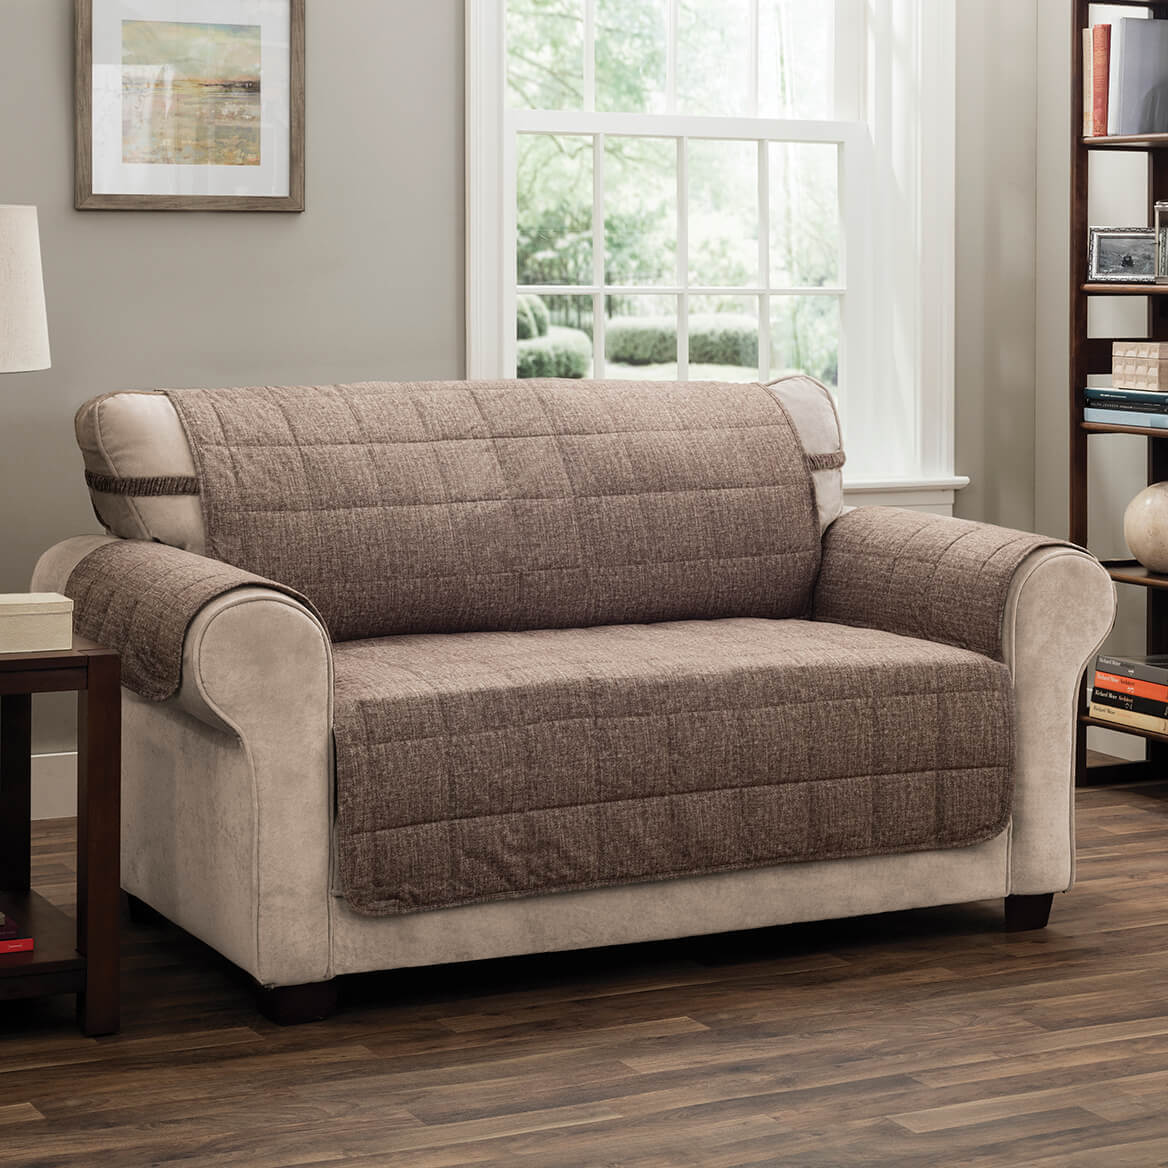 Innovative Textile Solutions Tyler Sofa Furniture Cover